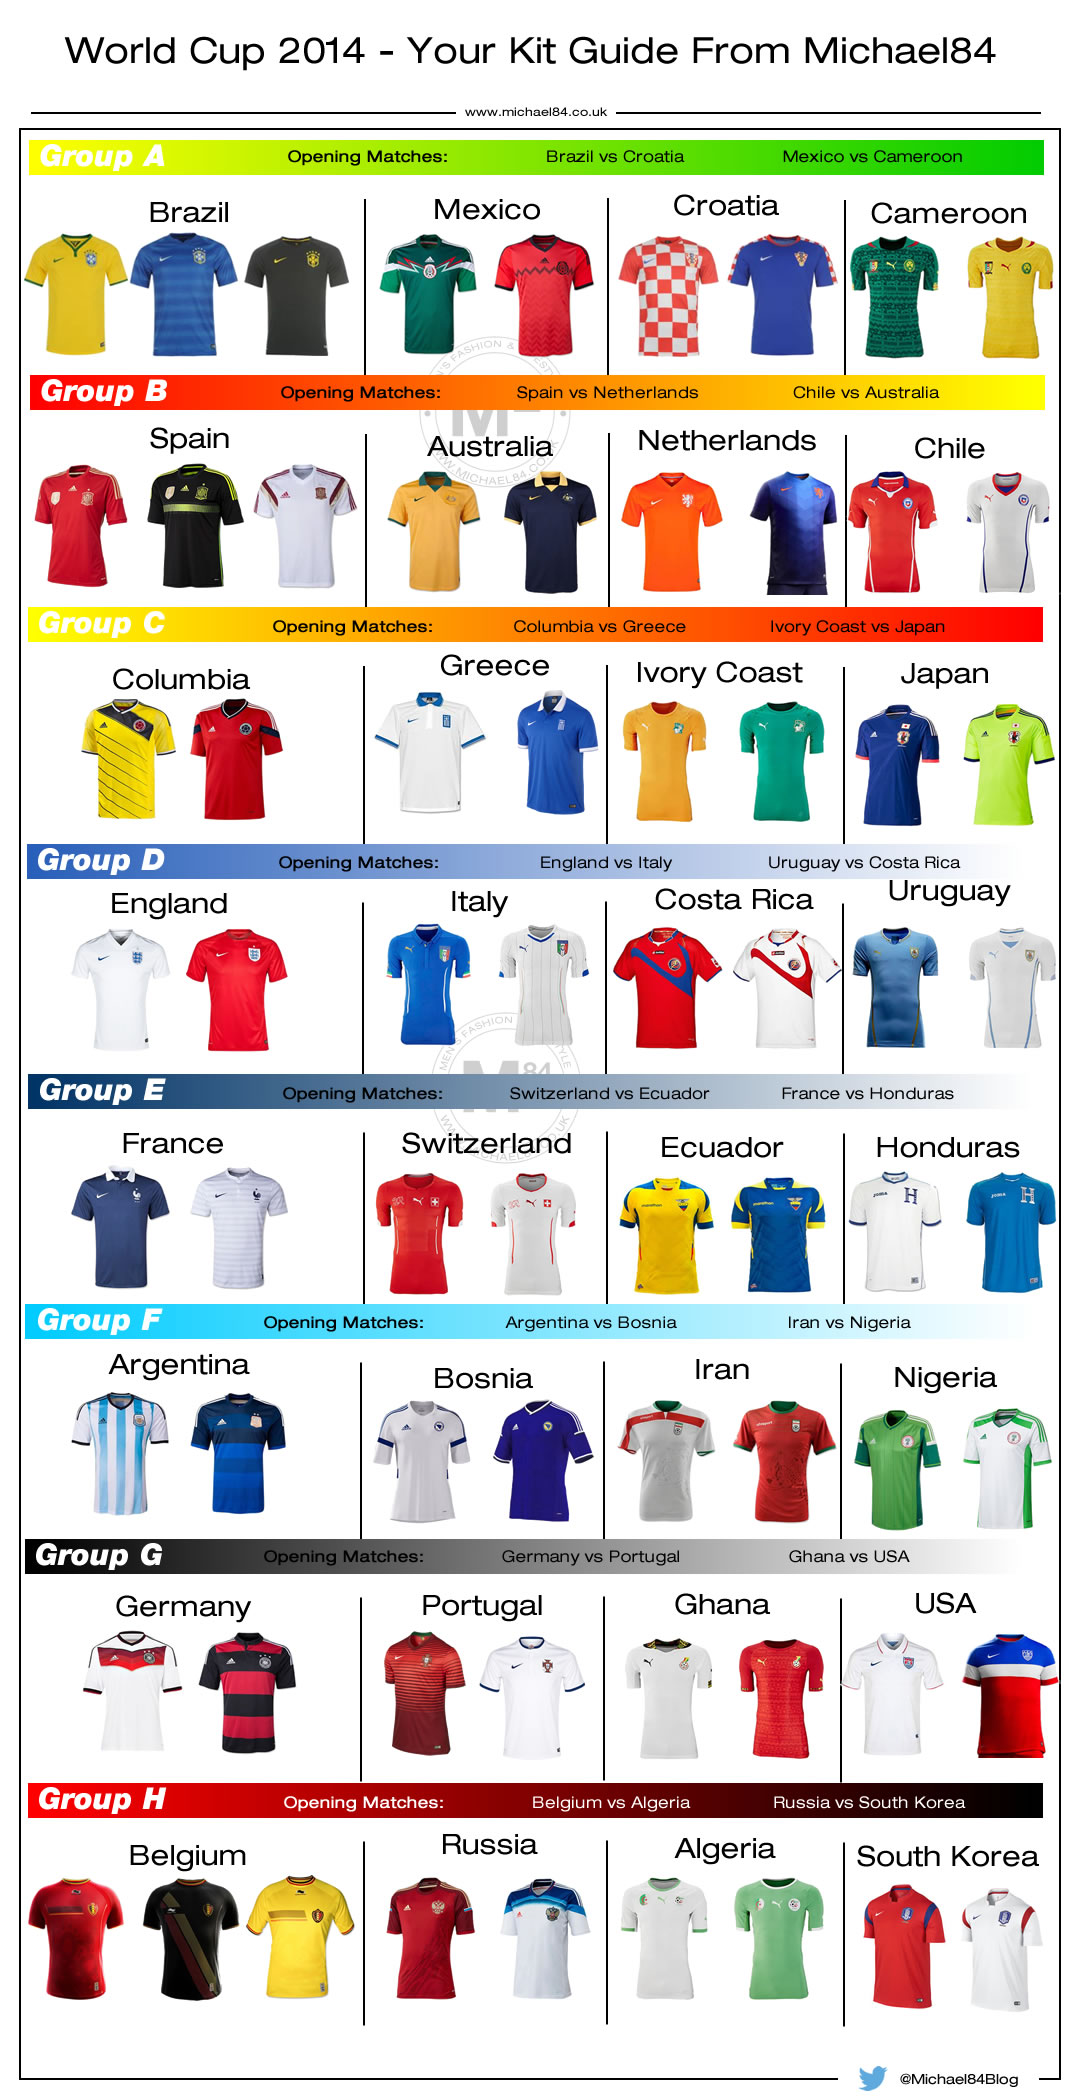 Every kit for the 2014 World Cup